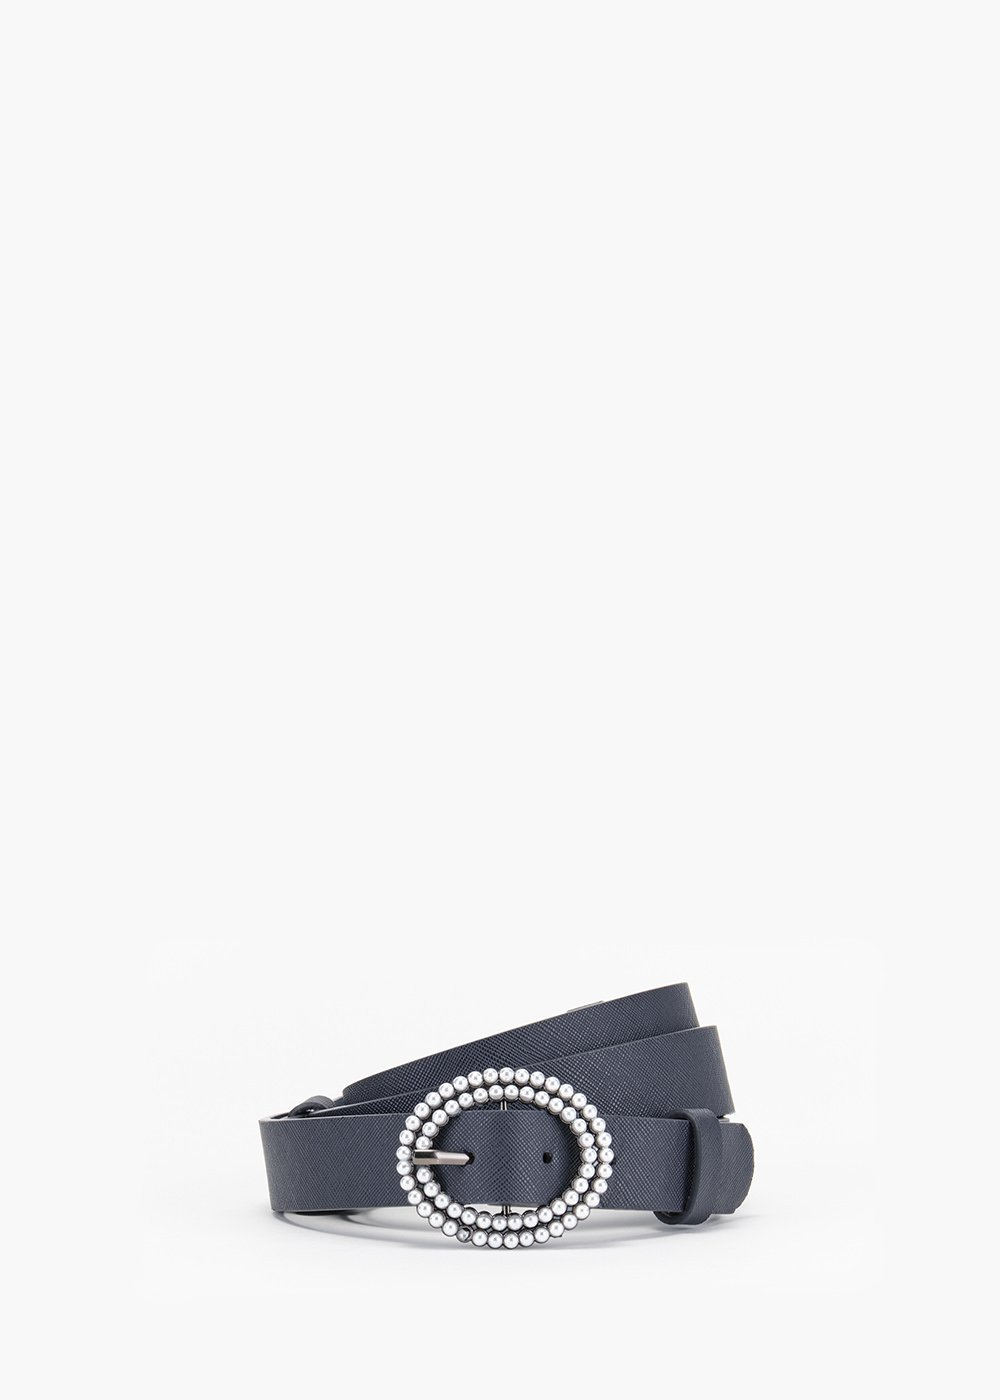 Cher belt in eco leather with micro pearl buckle